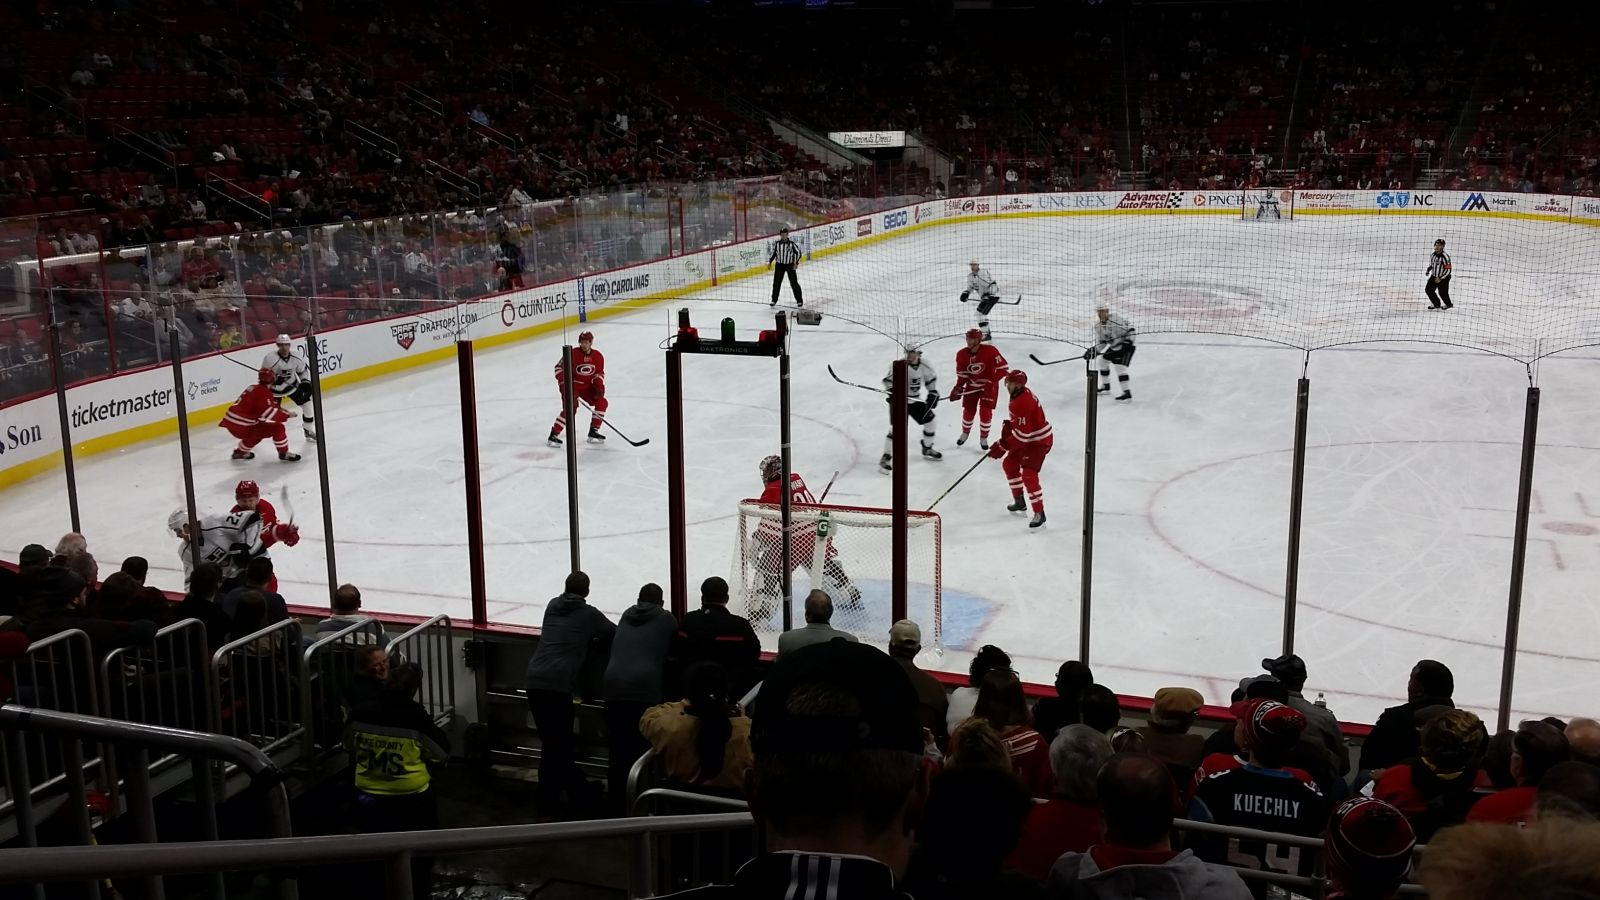 Section 111 seat view